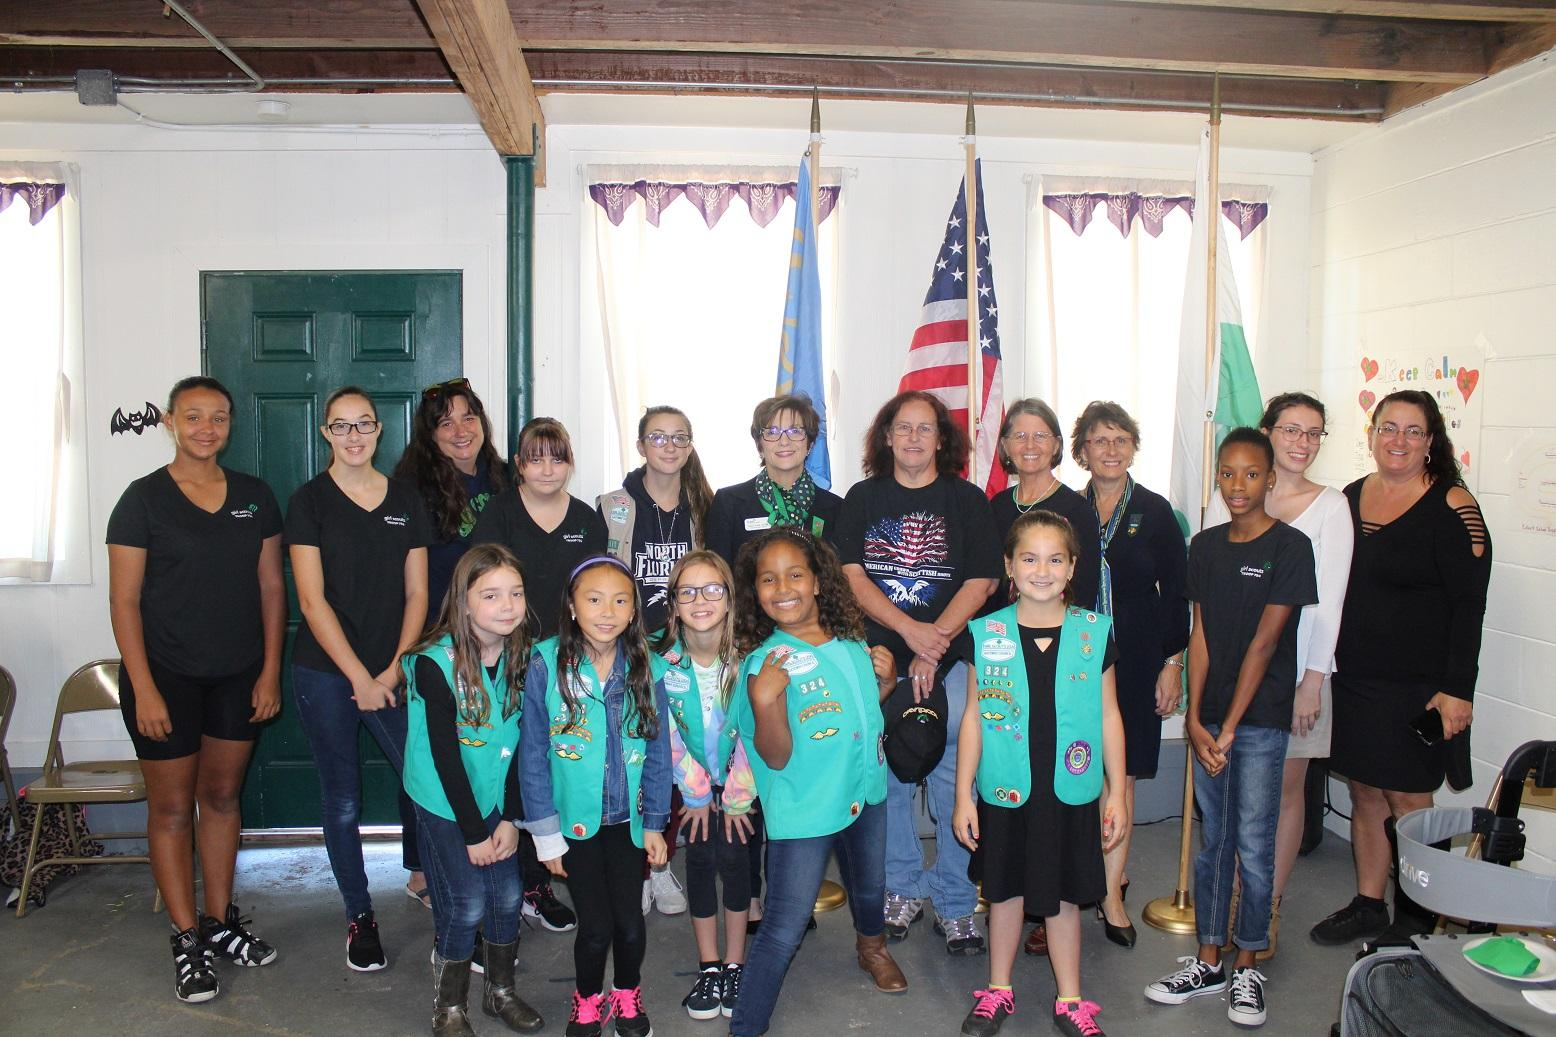 Beaches Little House Ends Its 65 Year Run With The Girl Scouts Wjct News